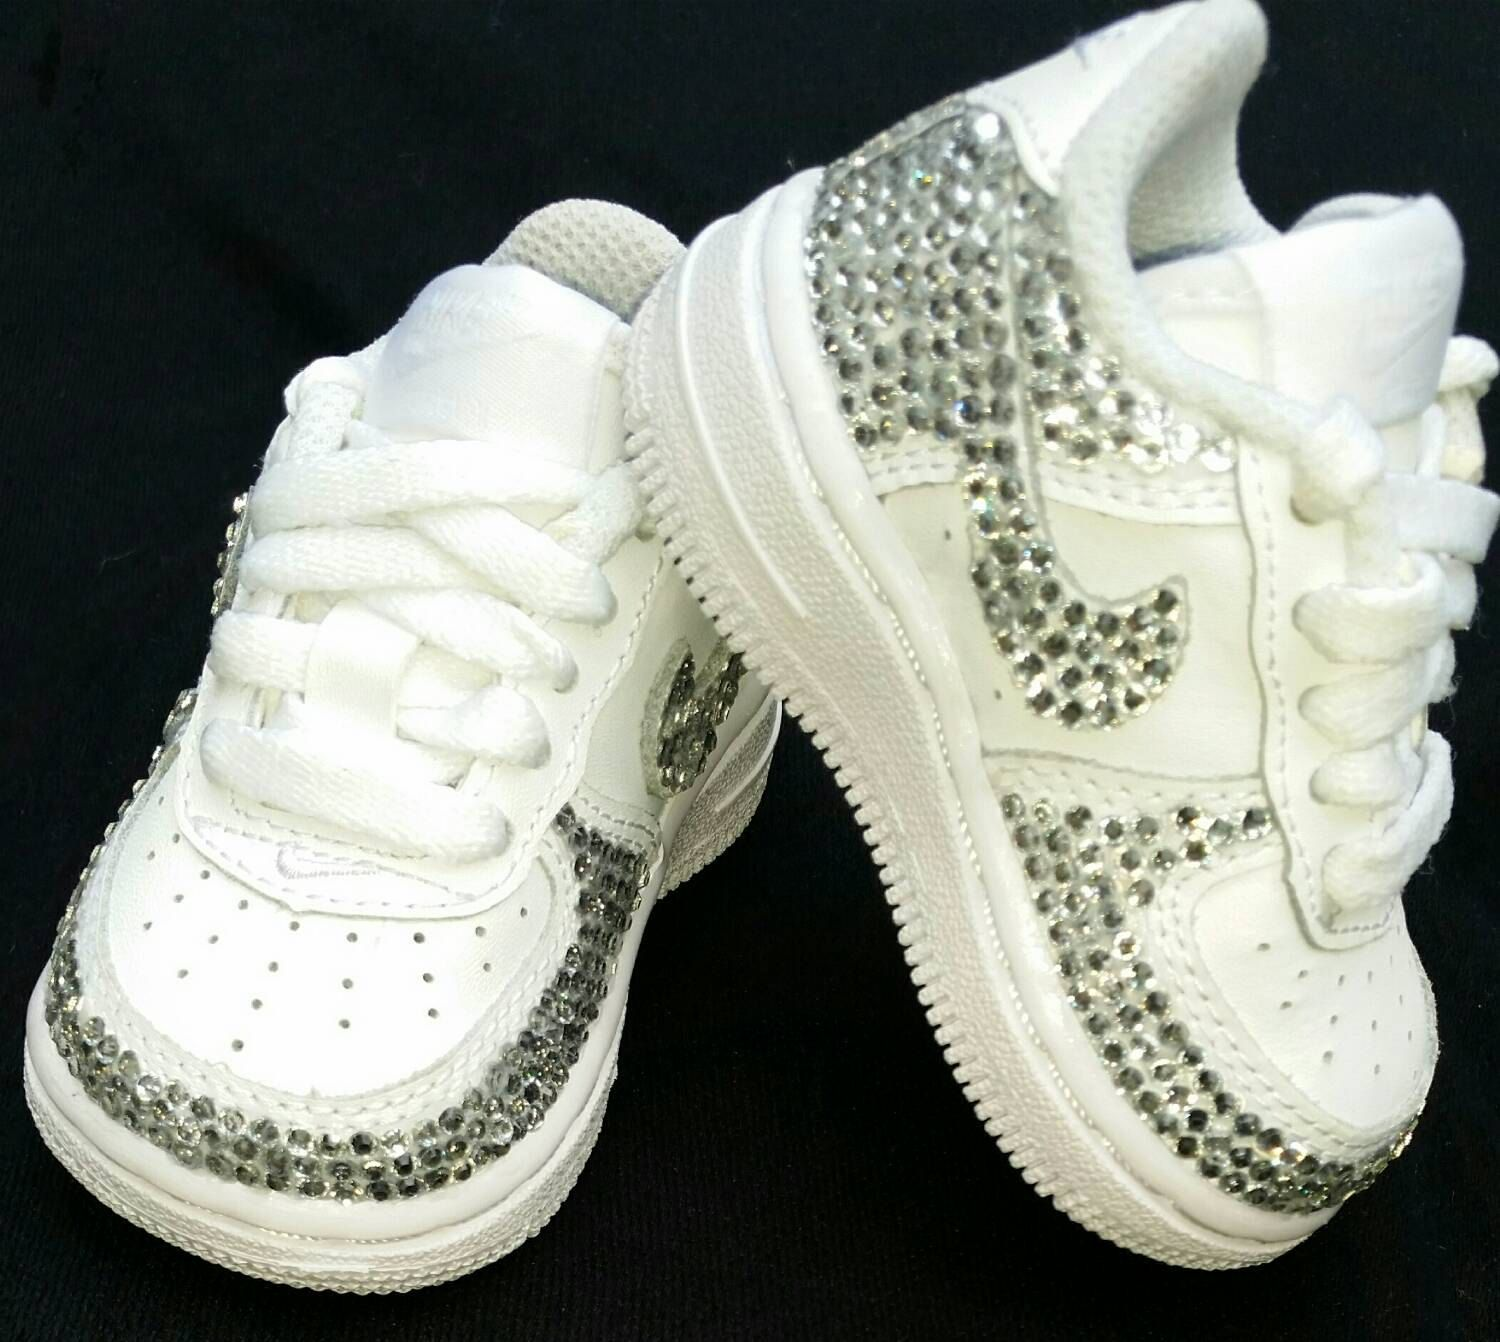 Bling Nike Air Force Ones- Size 2C pictured- Infant  Toddler Kid Sizes  Available- Boys- Girls- Customizable- New Baby Gift- Baby Shower Gift by  DivineKidz ... c30b145a6